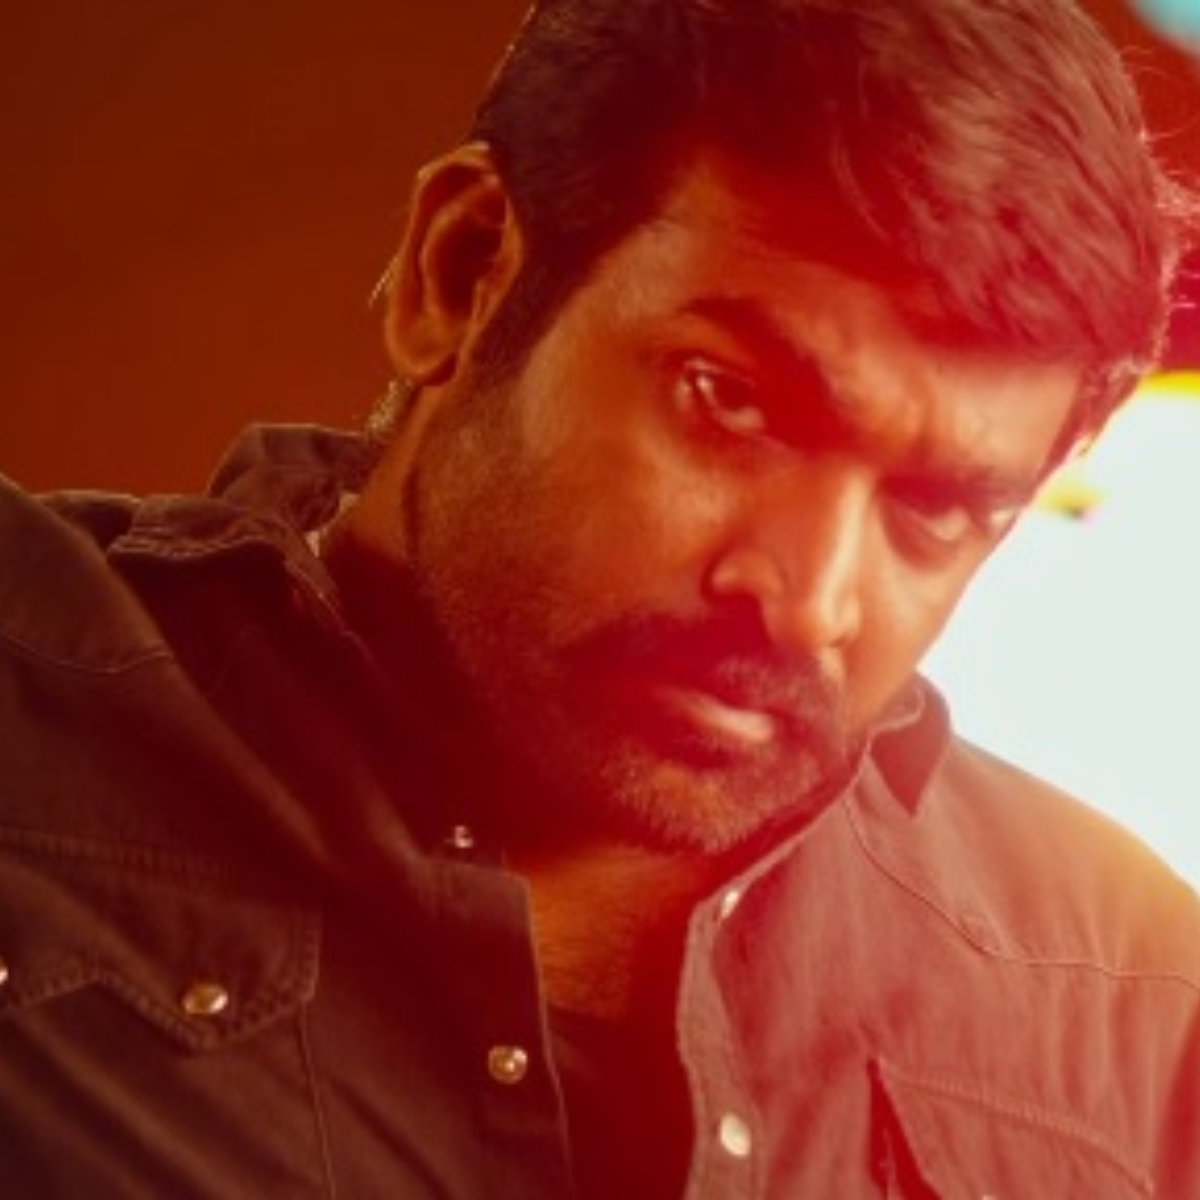 Sangathamizhan Trailer: Vijay Sethupathi battles the evil forces of greed to prevent injustice